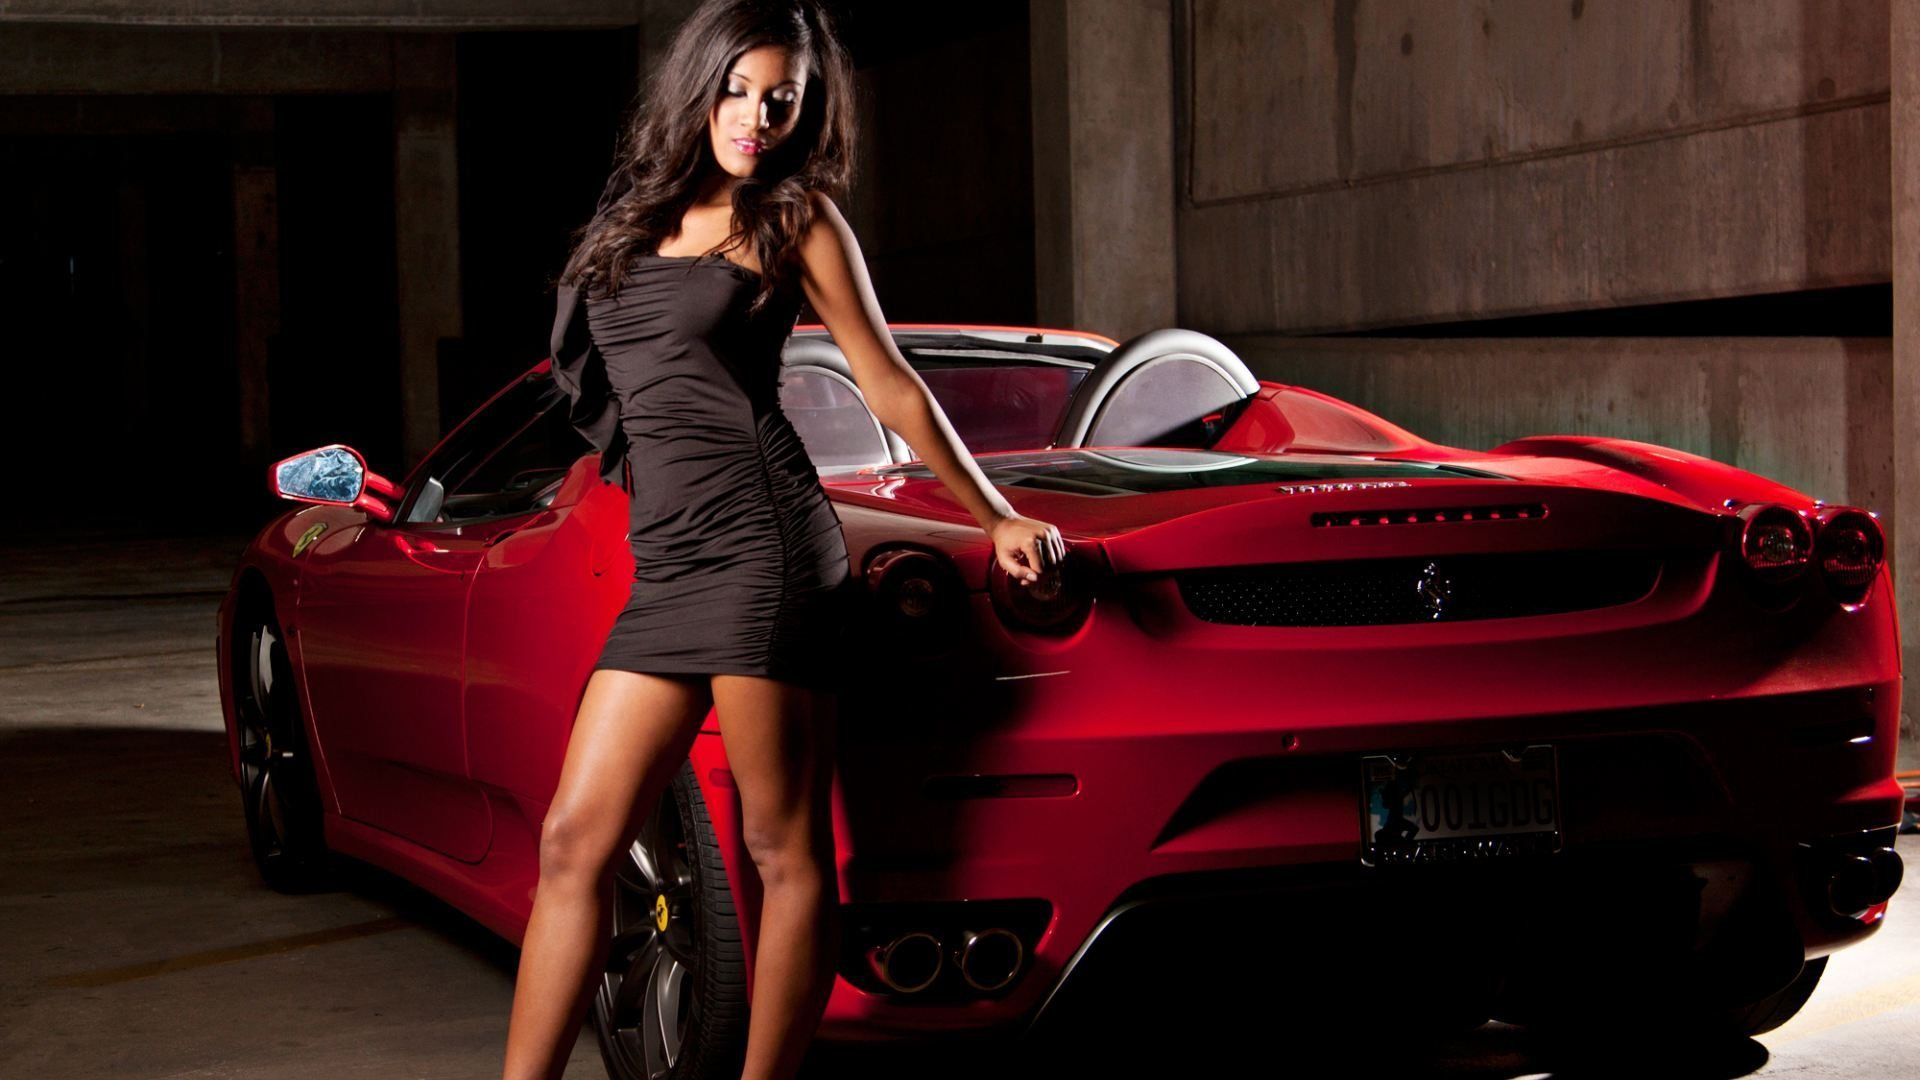 Download Hot Girls And Car Wallpaper Hd Backgrounds Download